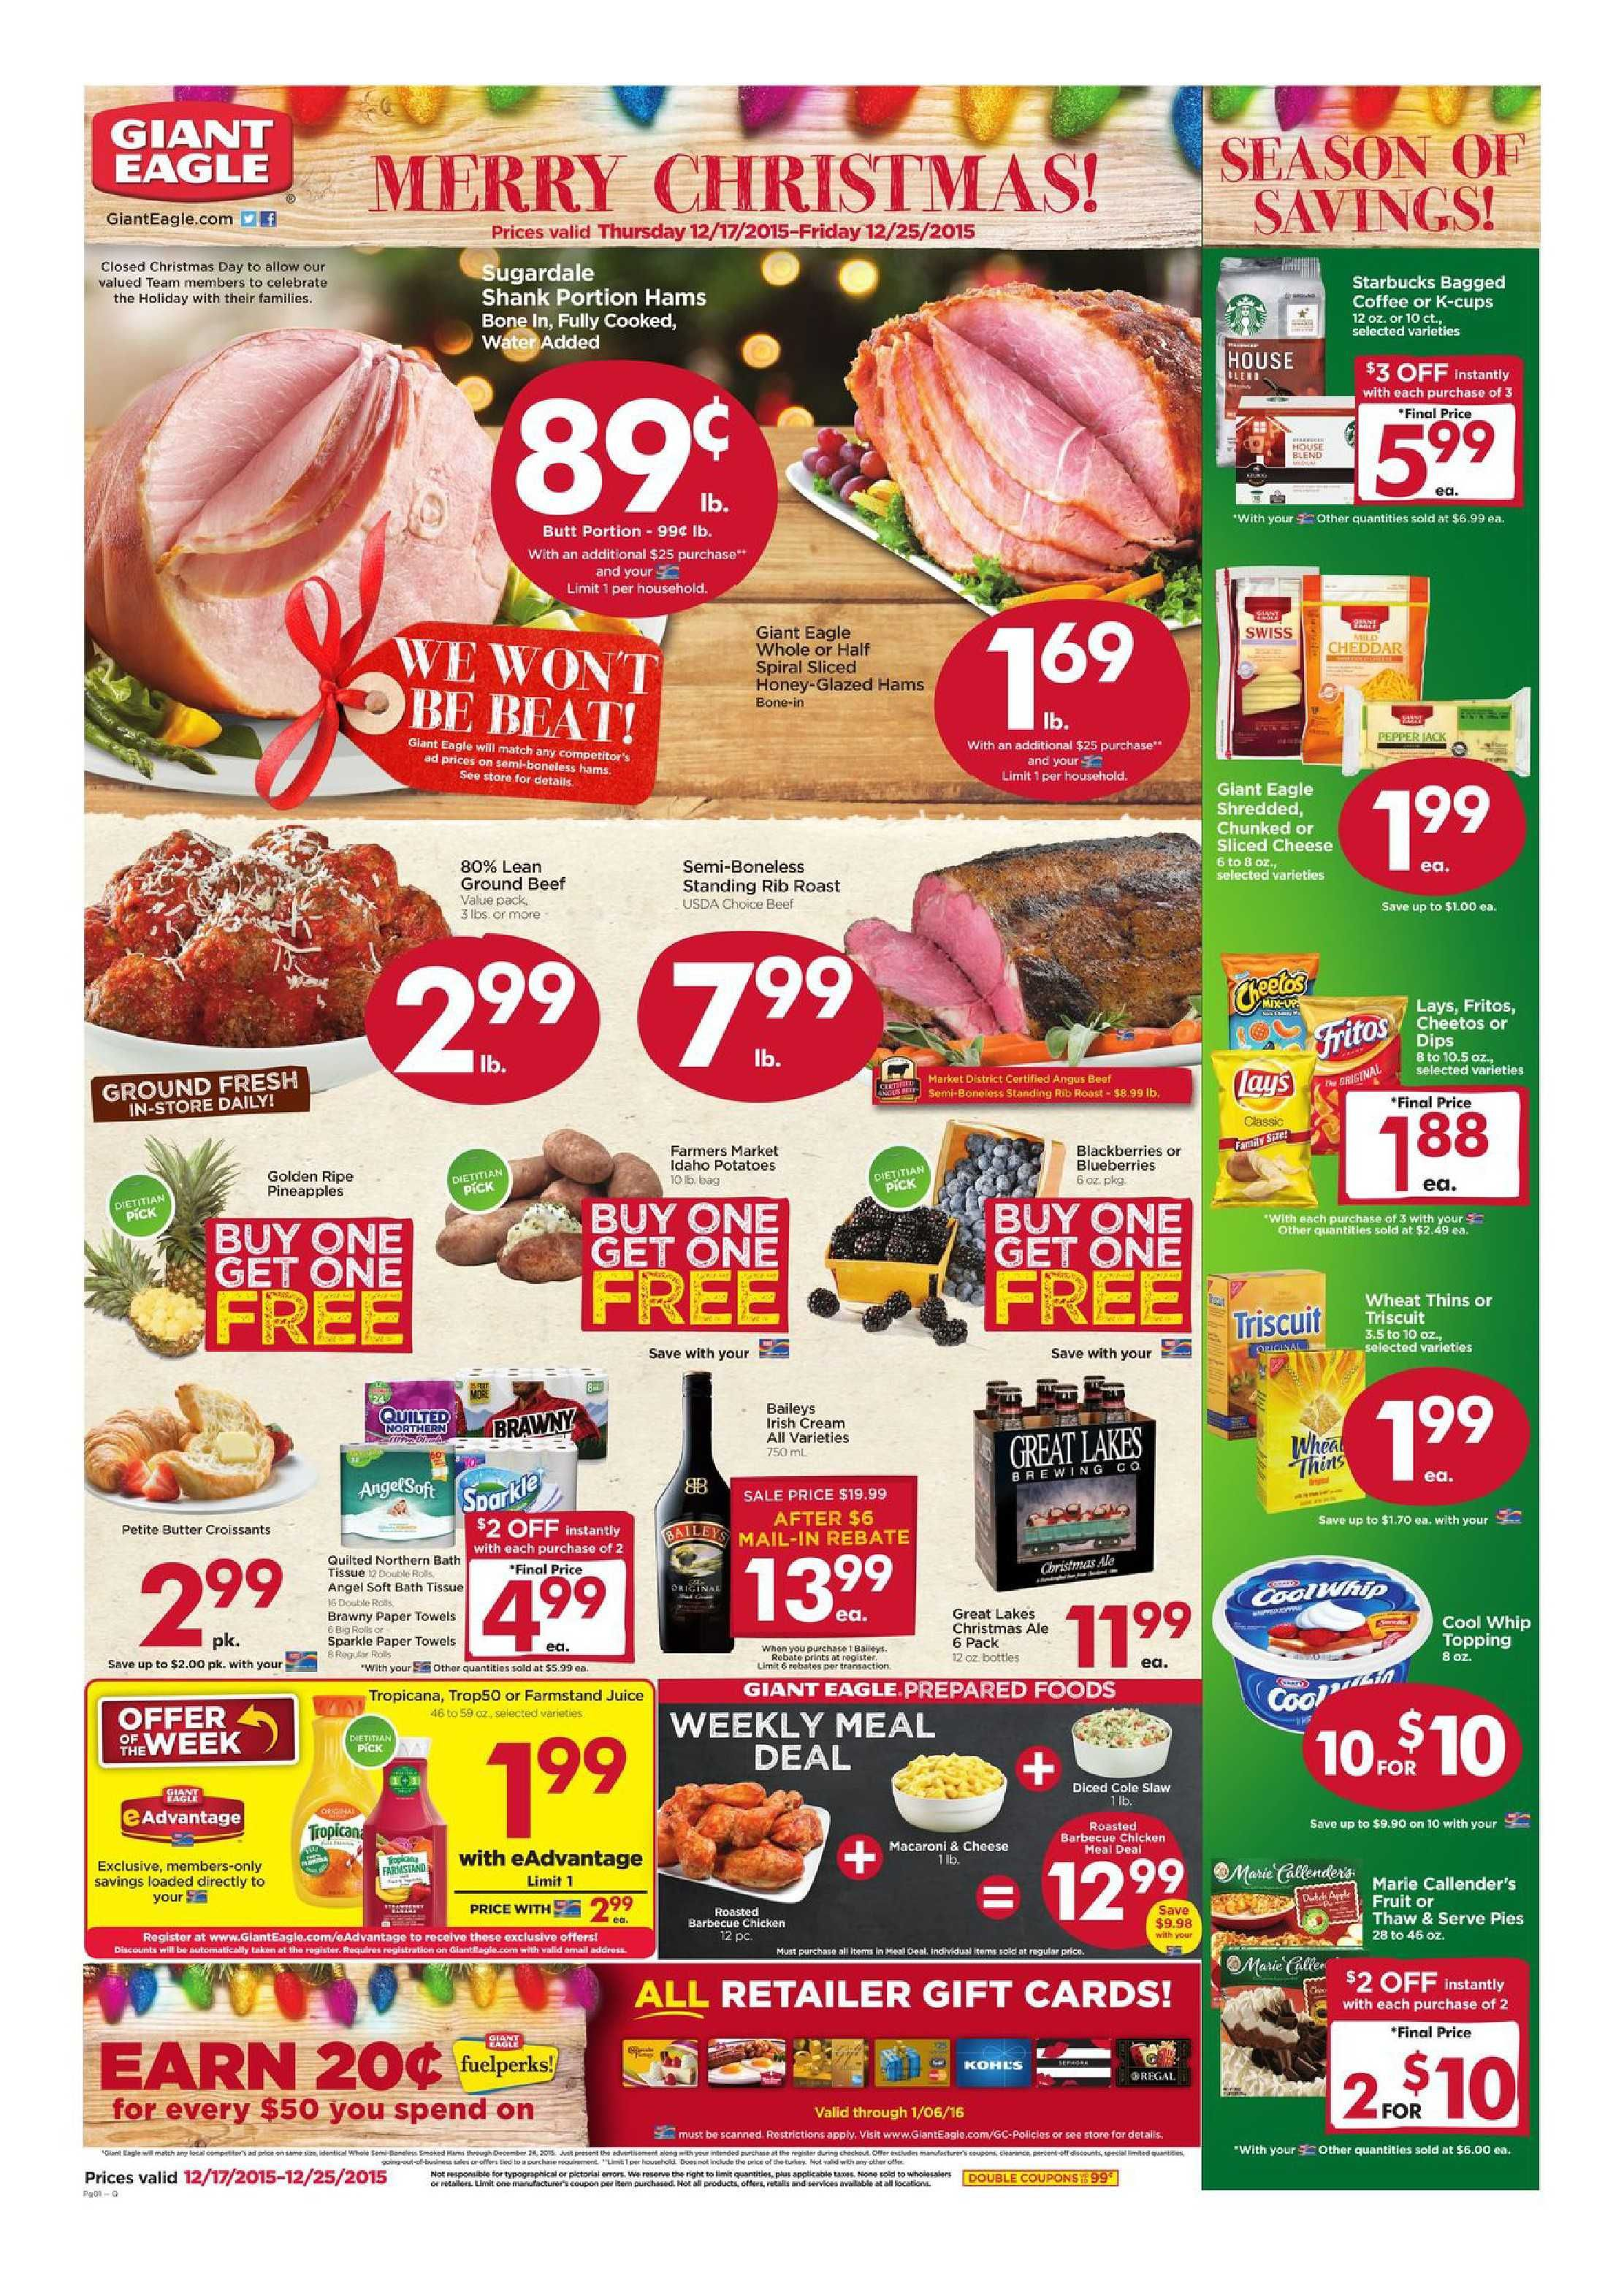 giant food sale ad for next week